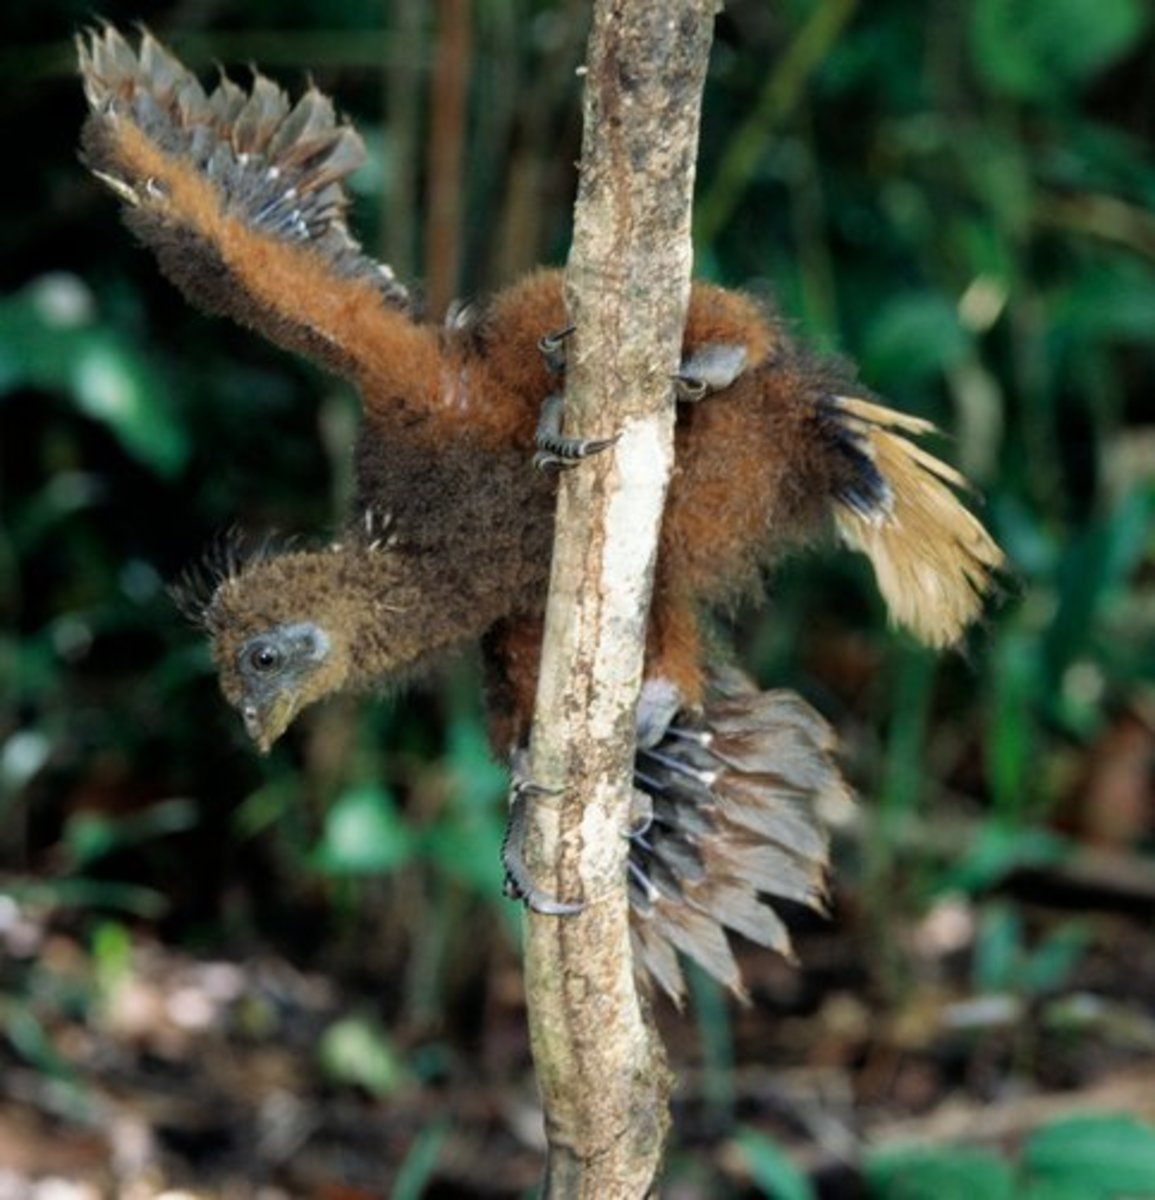 A hoatzin chick using its wing claws to climb tree branches.